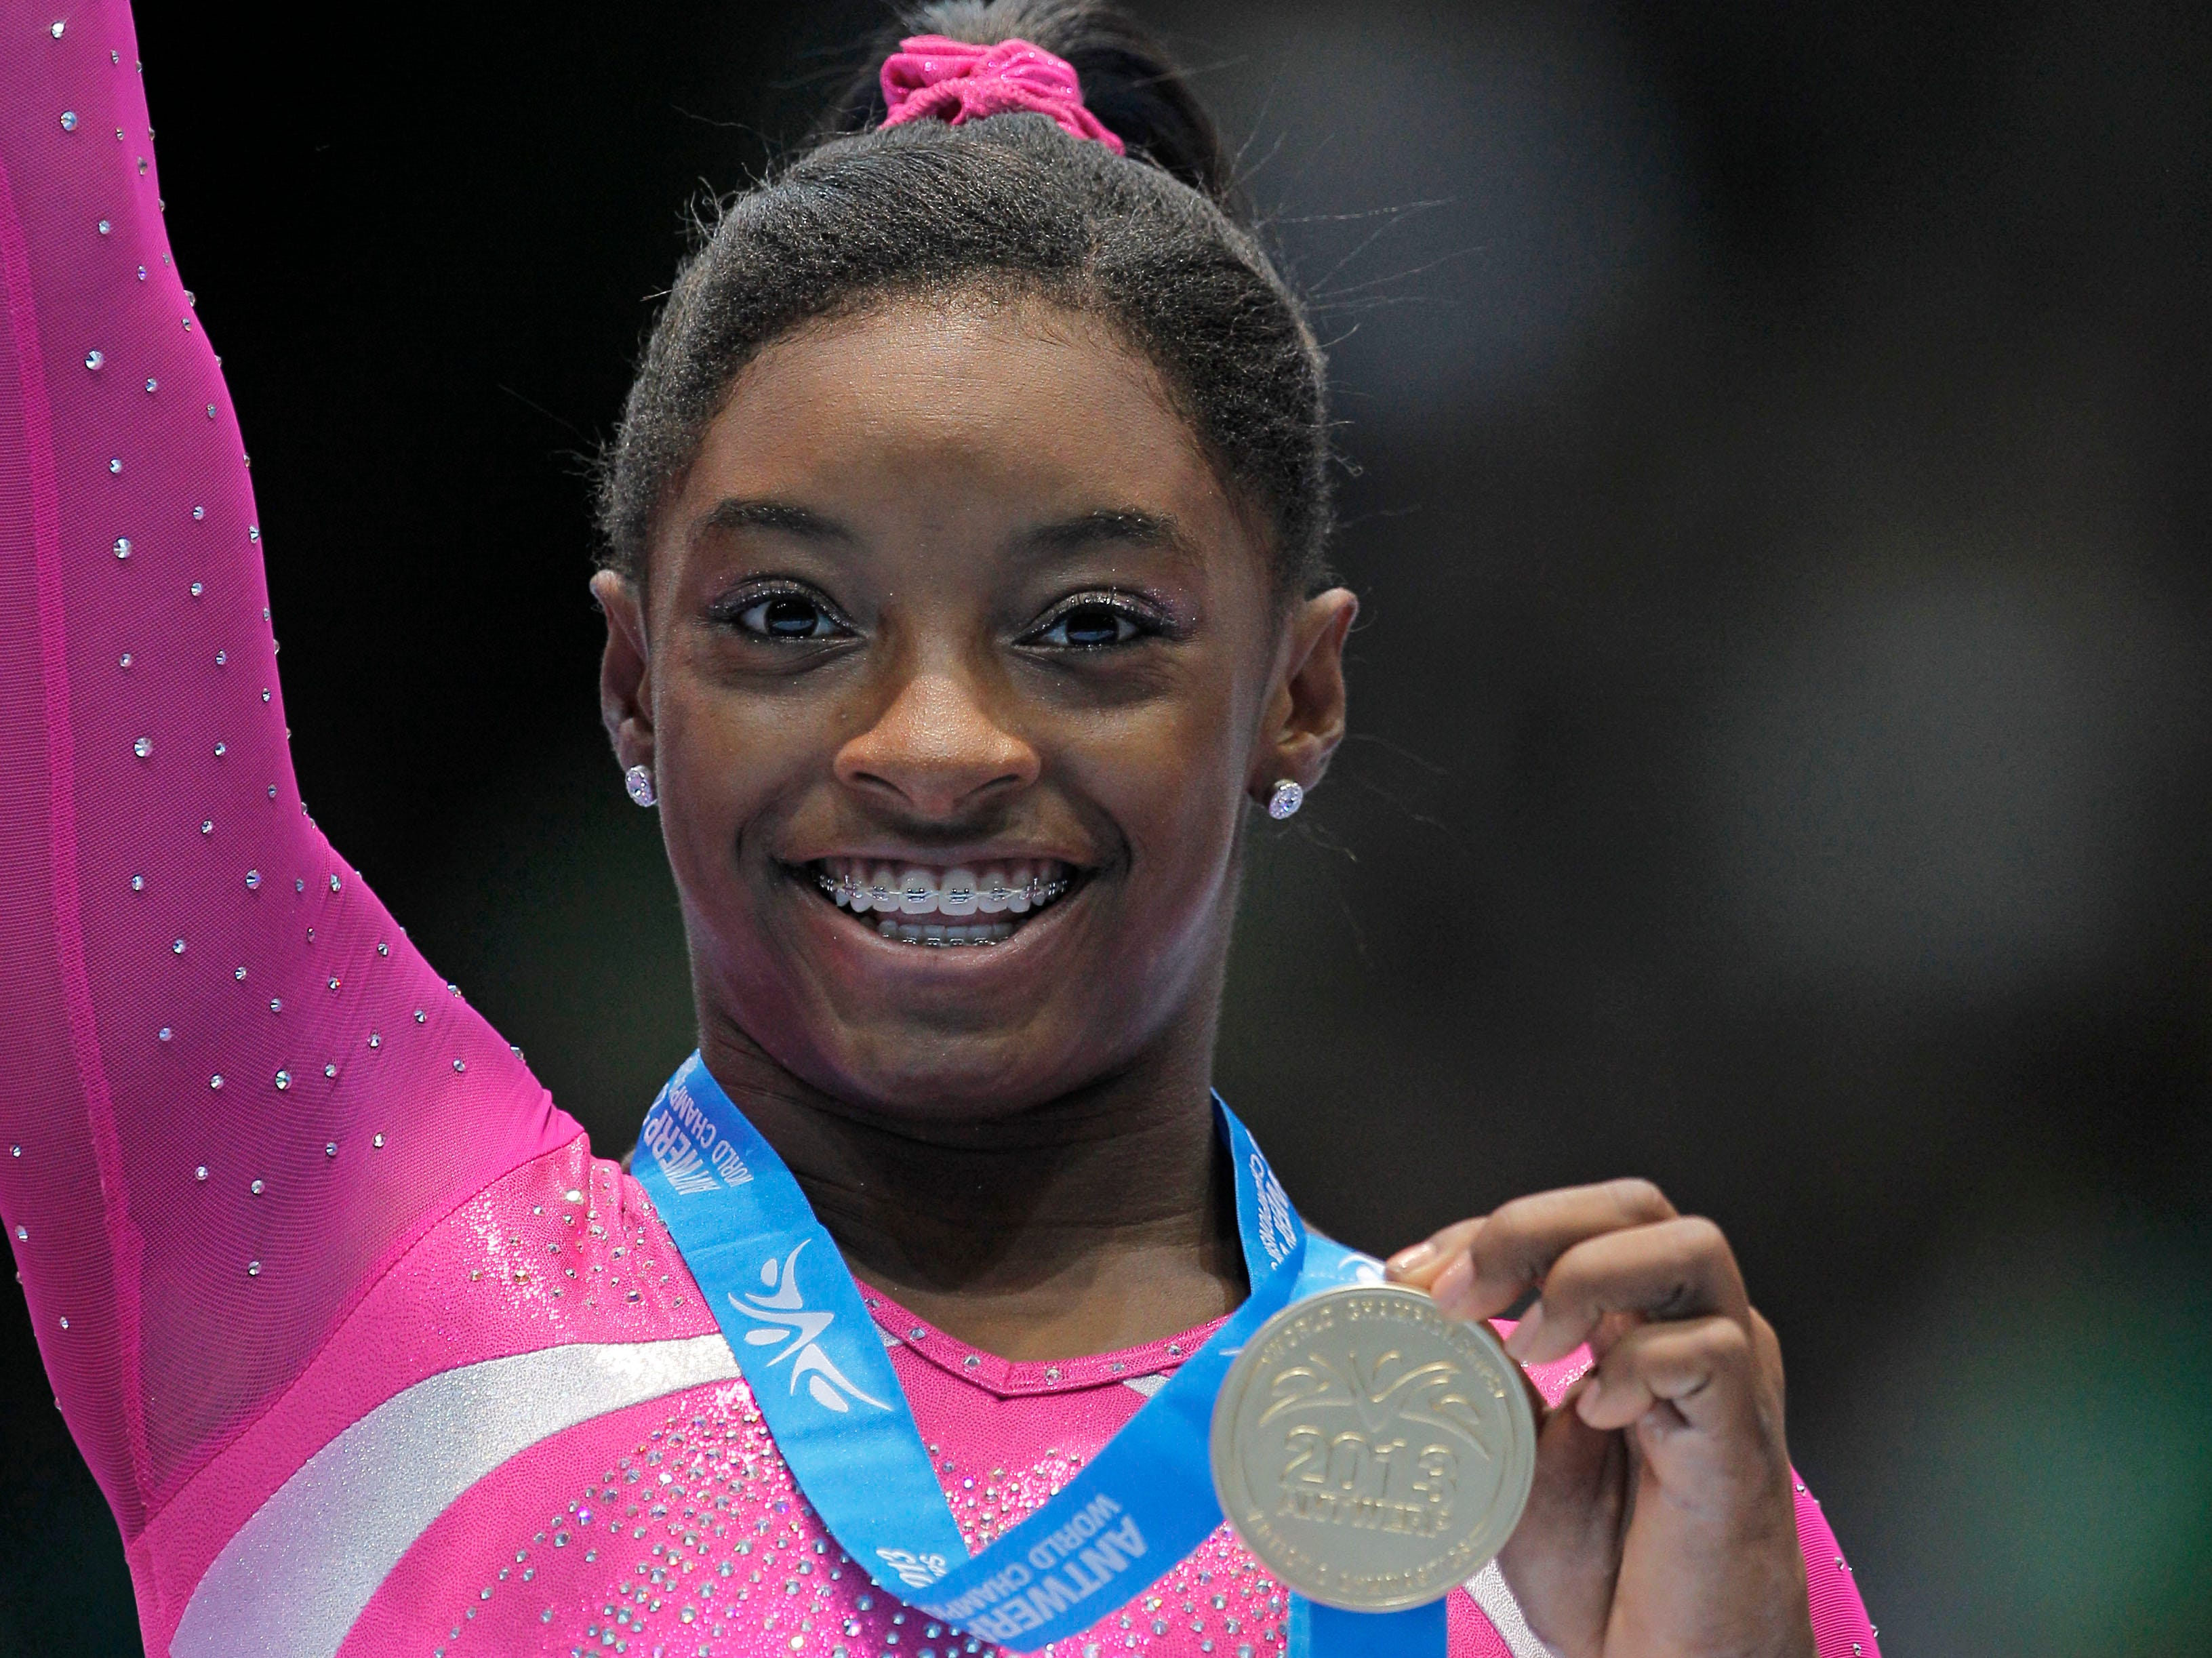 In 2013 at age 16, Simone Biles wins her first world championship gold medals in the all-around and floor exercise in Antwerp, Belgium.